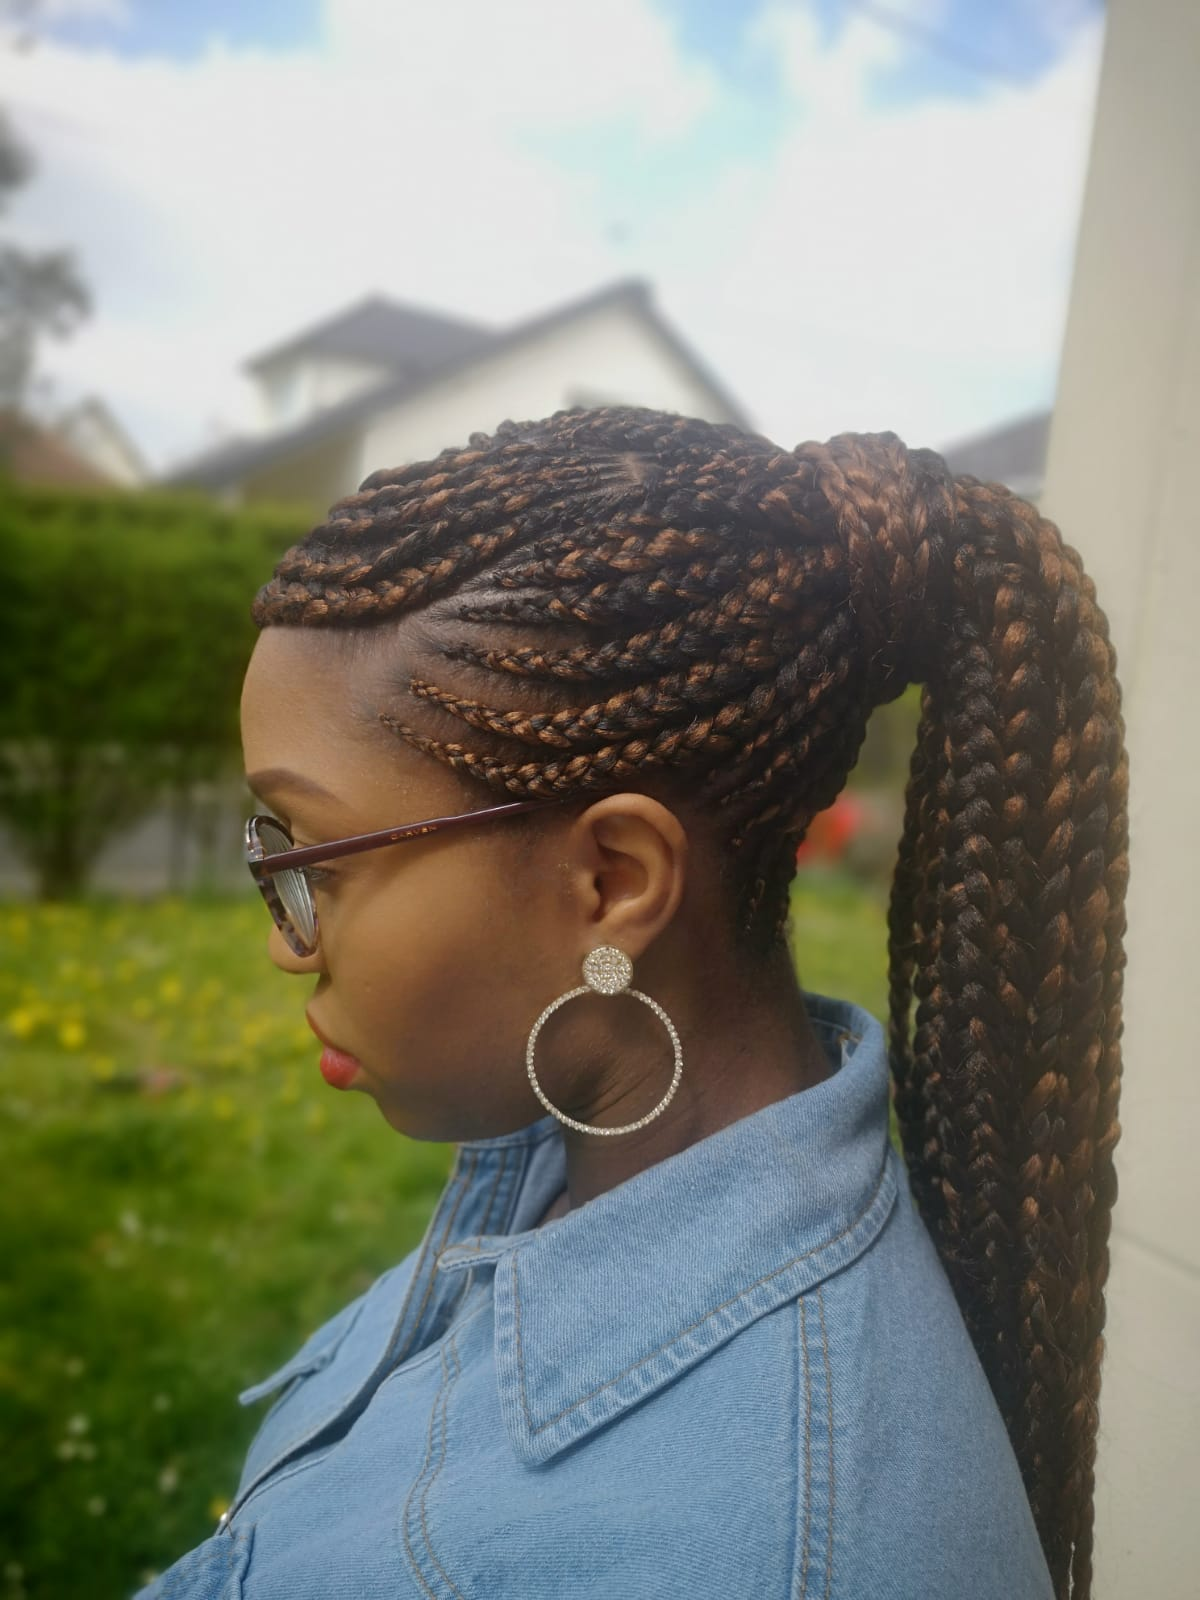 salon de coiffure afro tresse tresses box braids crochet braids vanilles tissages paris 75 77 78 91 92 93 94 95 COHSGHTE